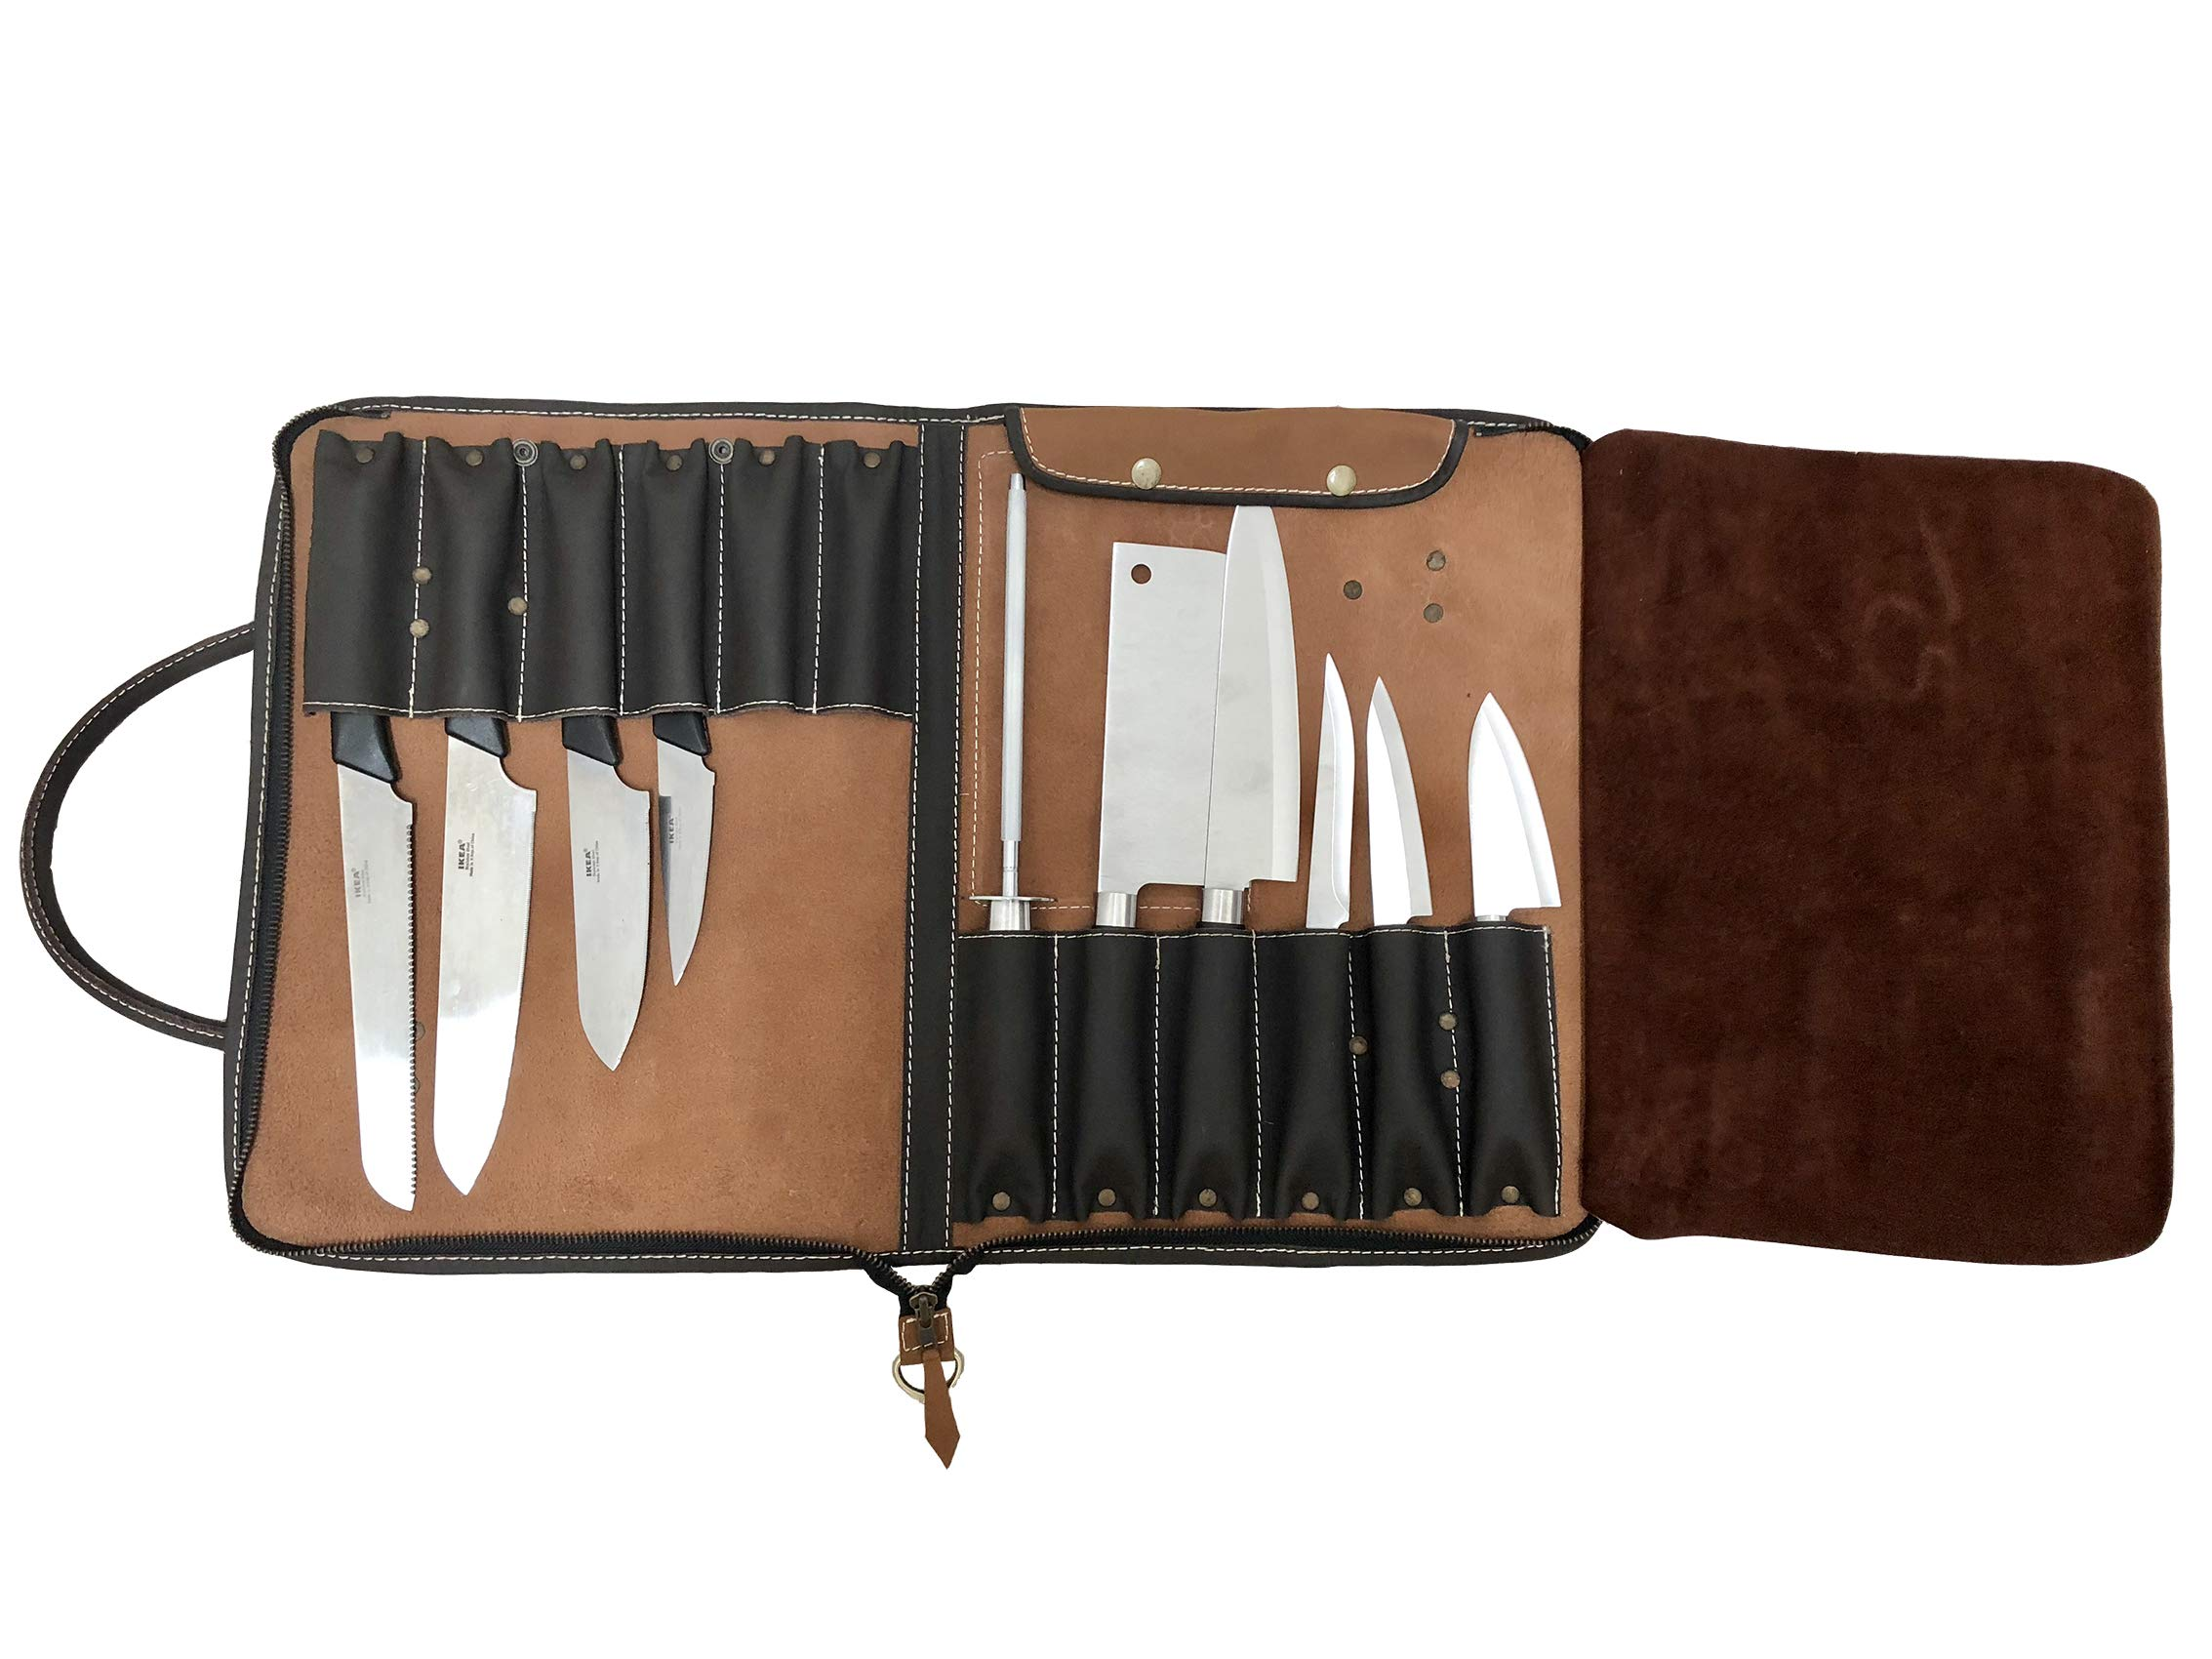 PROFESSIONAL CHEF Lightweight Genuine Premium VINTAGE TAN Leather Chef CARRYING Knife Bag/Knife Roll 12 Pockets SpaceKB016